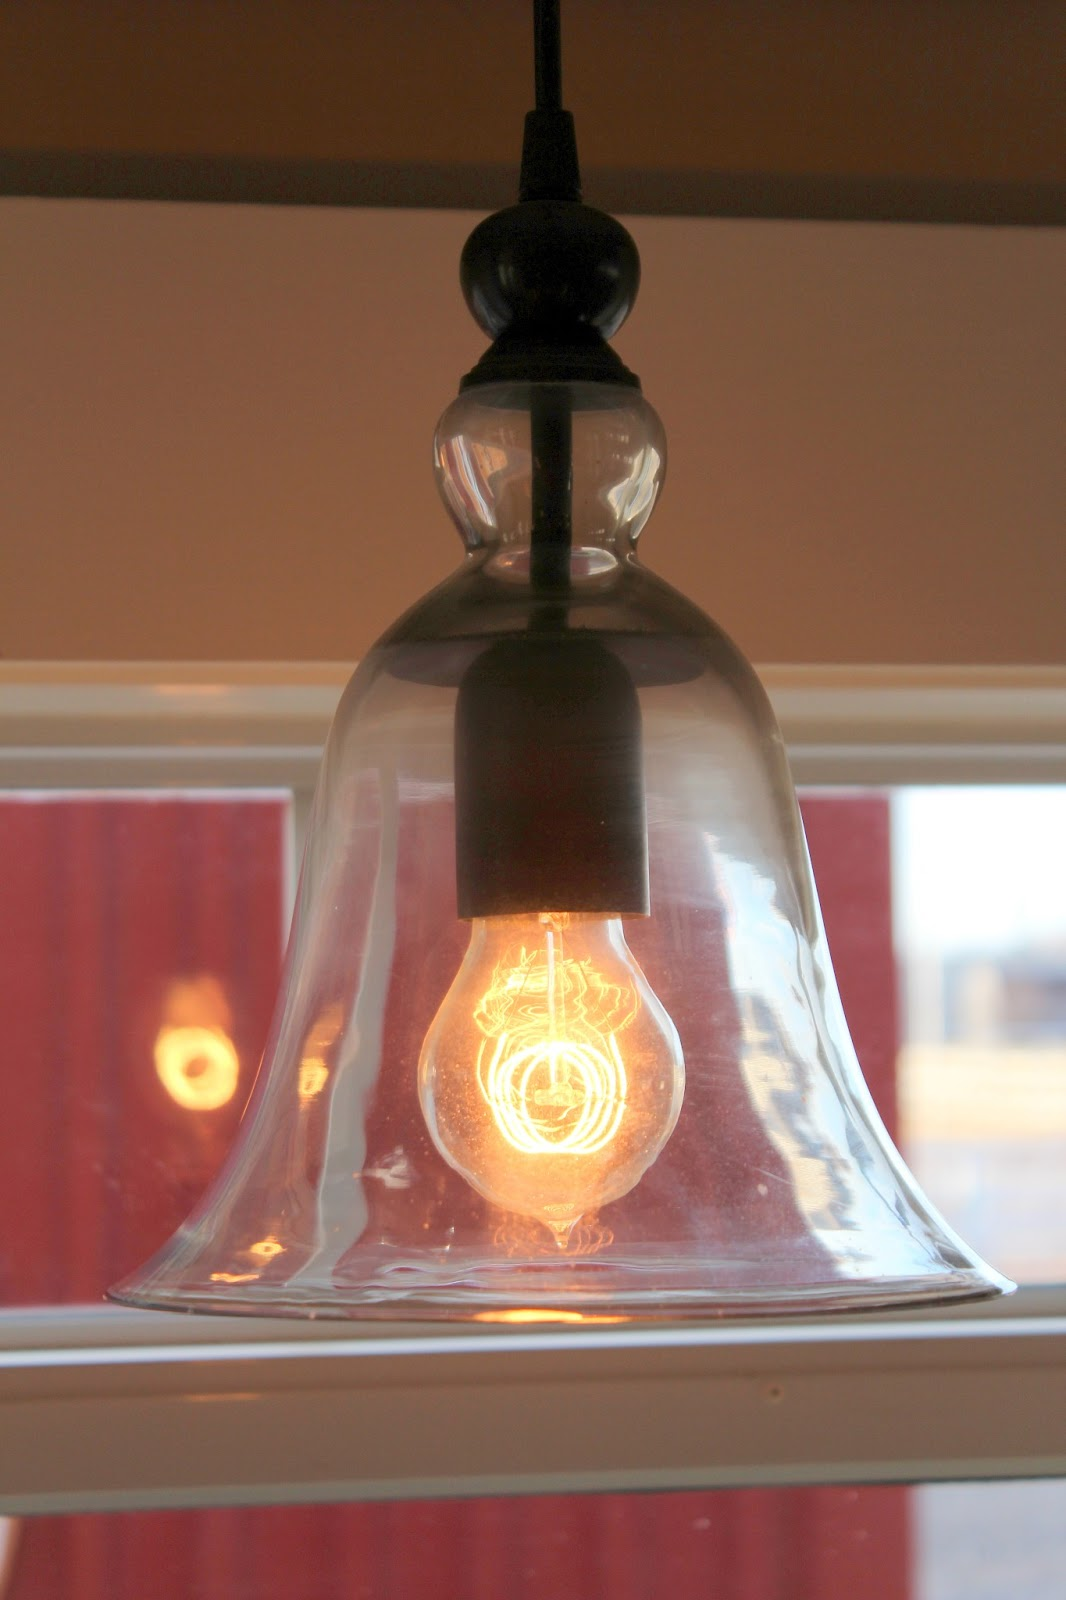 Recessed Lighting Bulbs Keep Burning Out